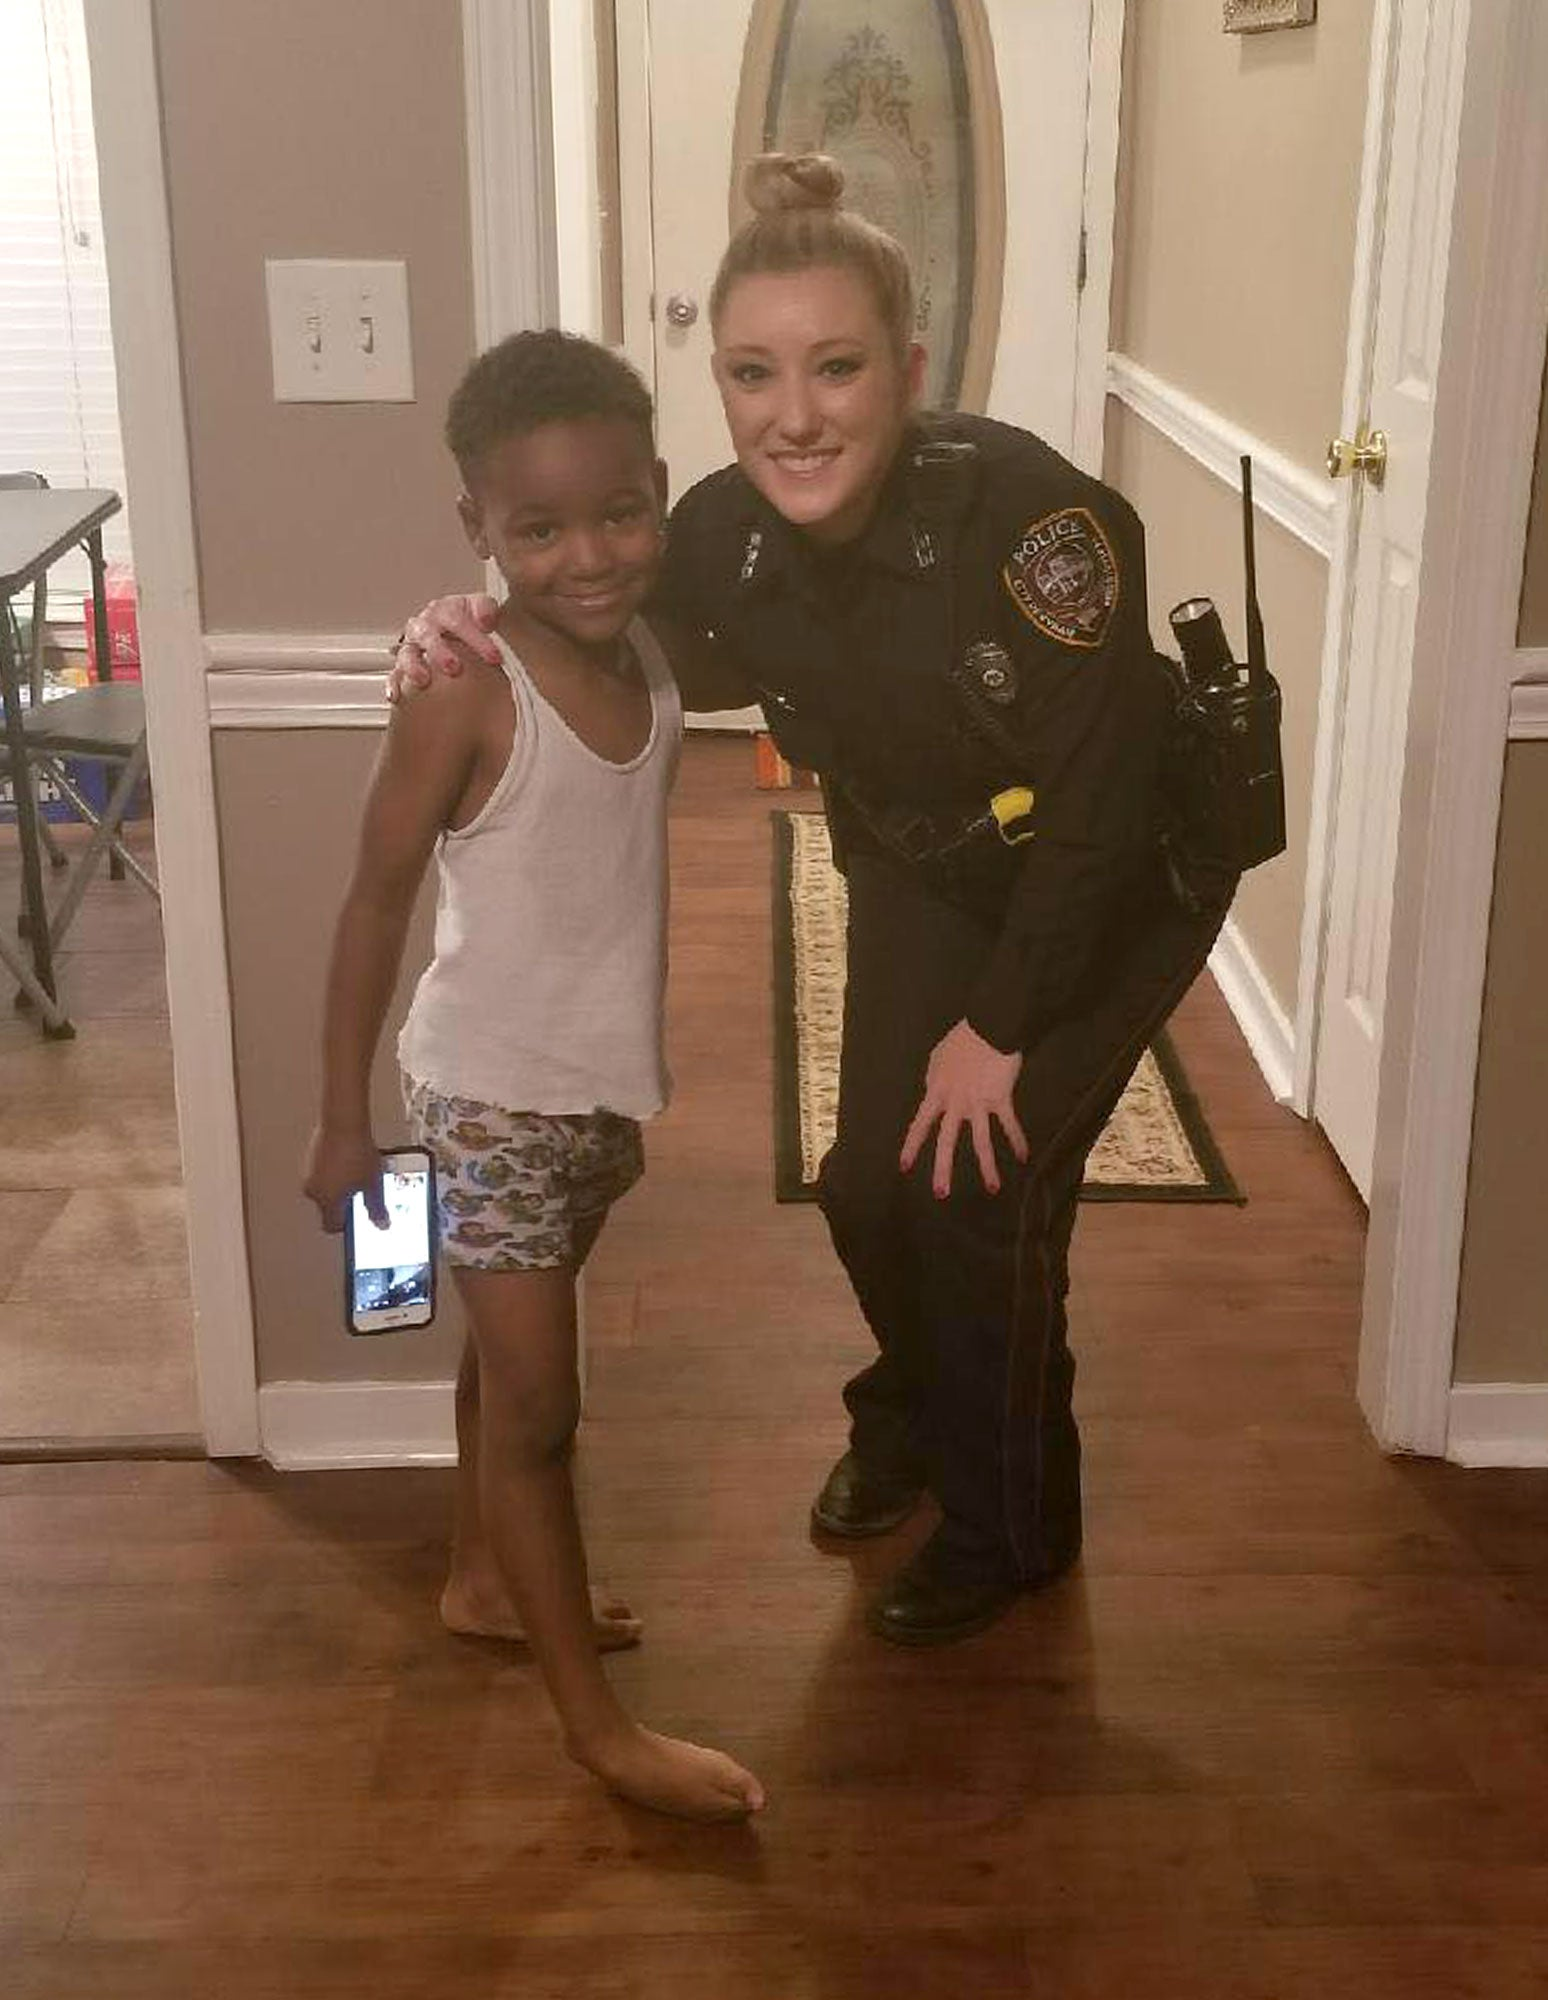 5-Year-Old Helps Apprehend the Grinch After Calling 911 to Stop Him from Stealing Christmas